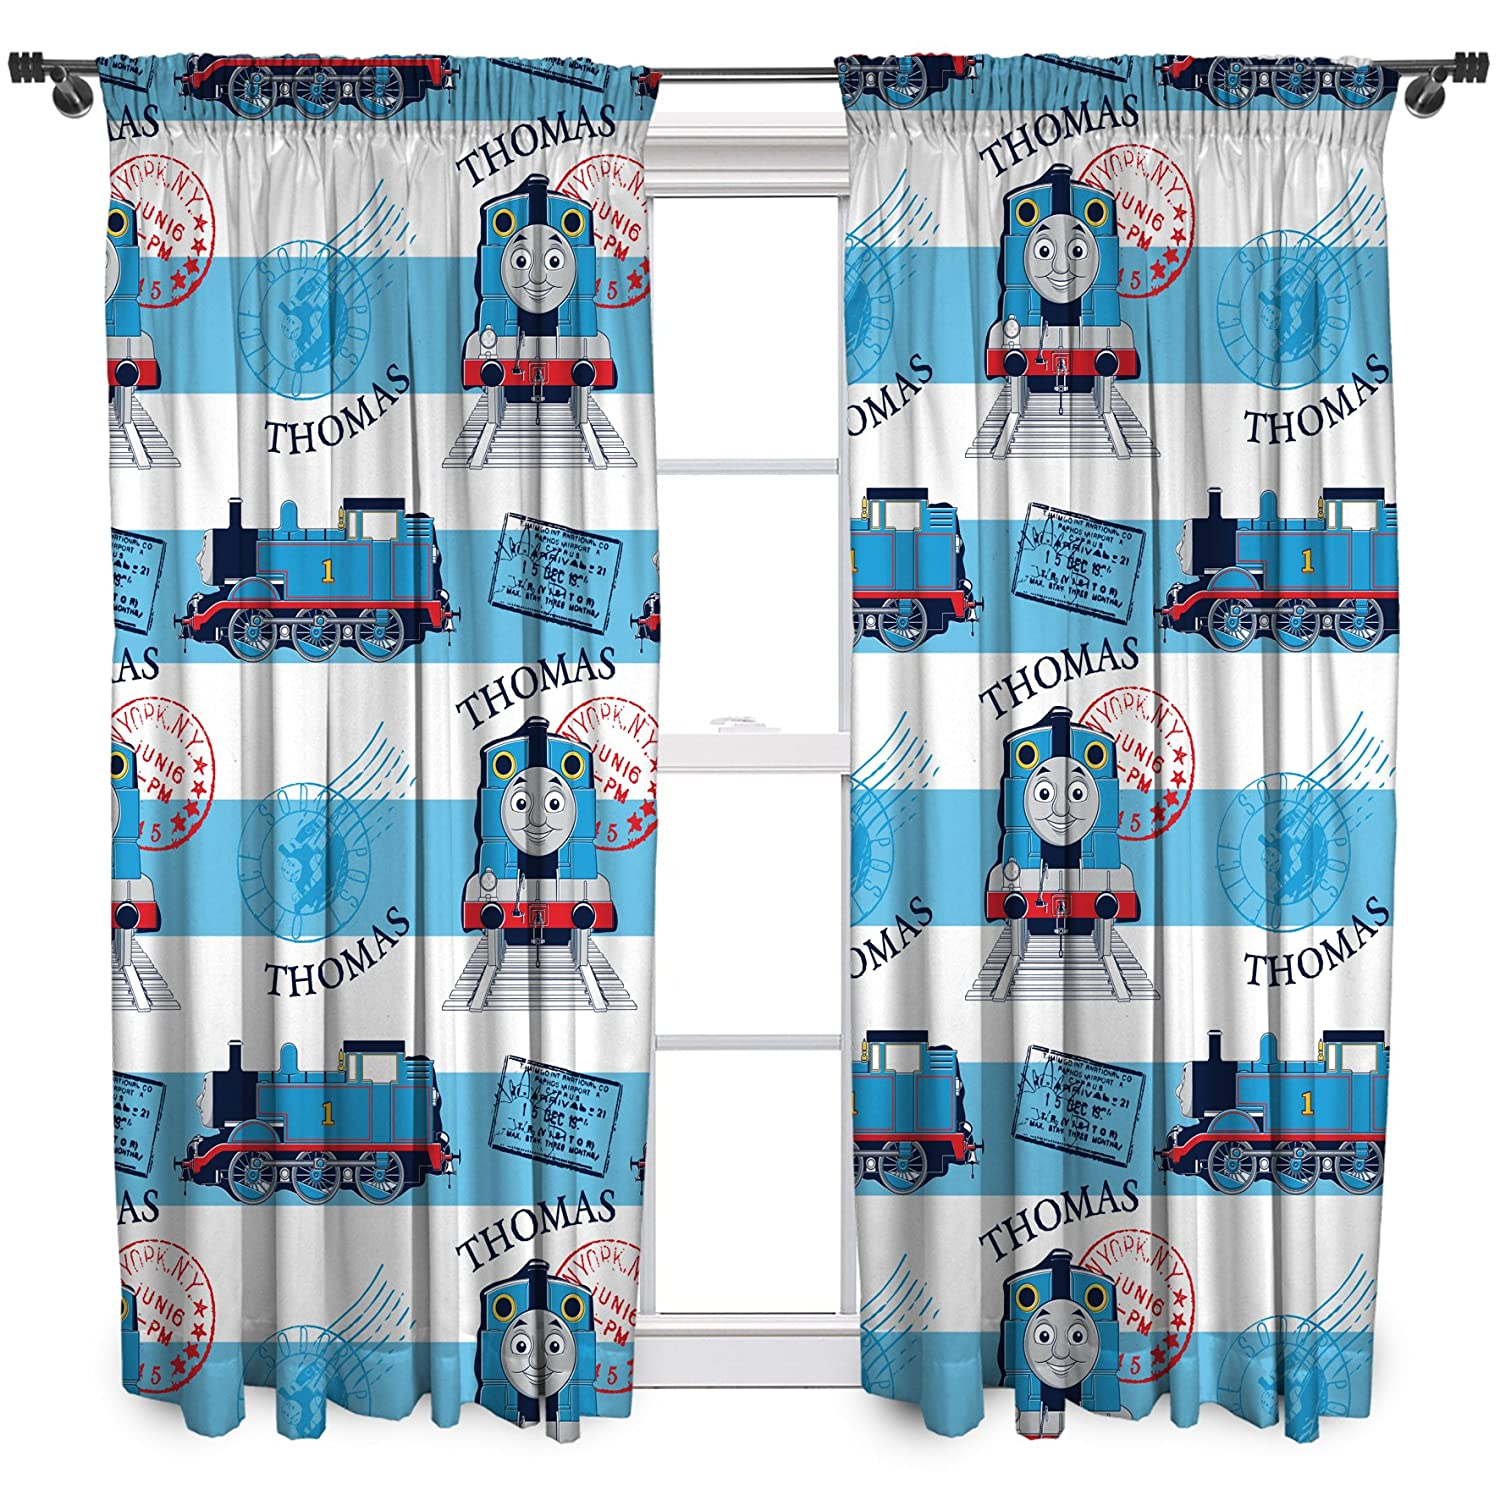 Thomas The Tank Engine Curtains 72 Drop Www